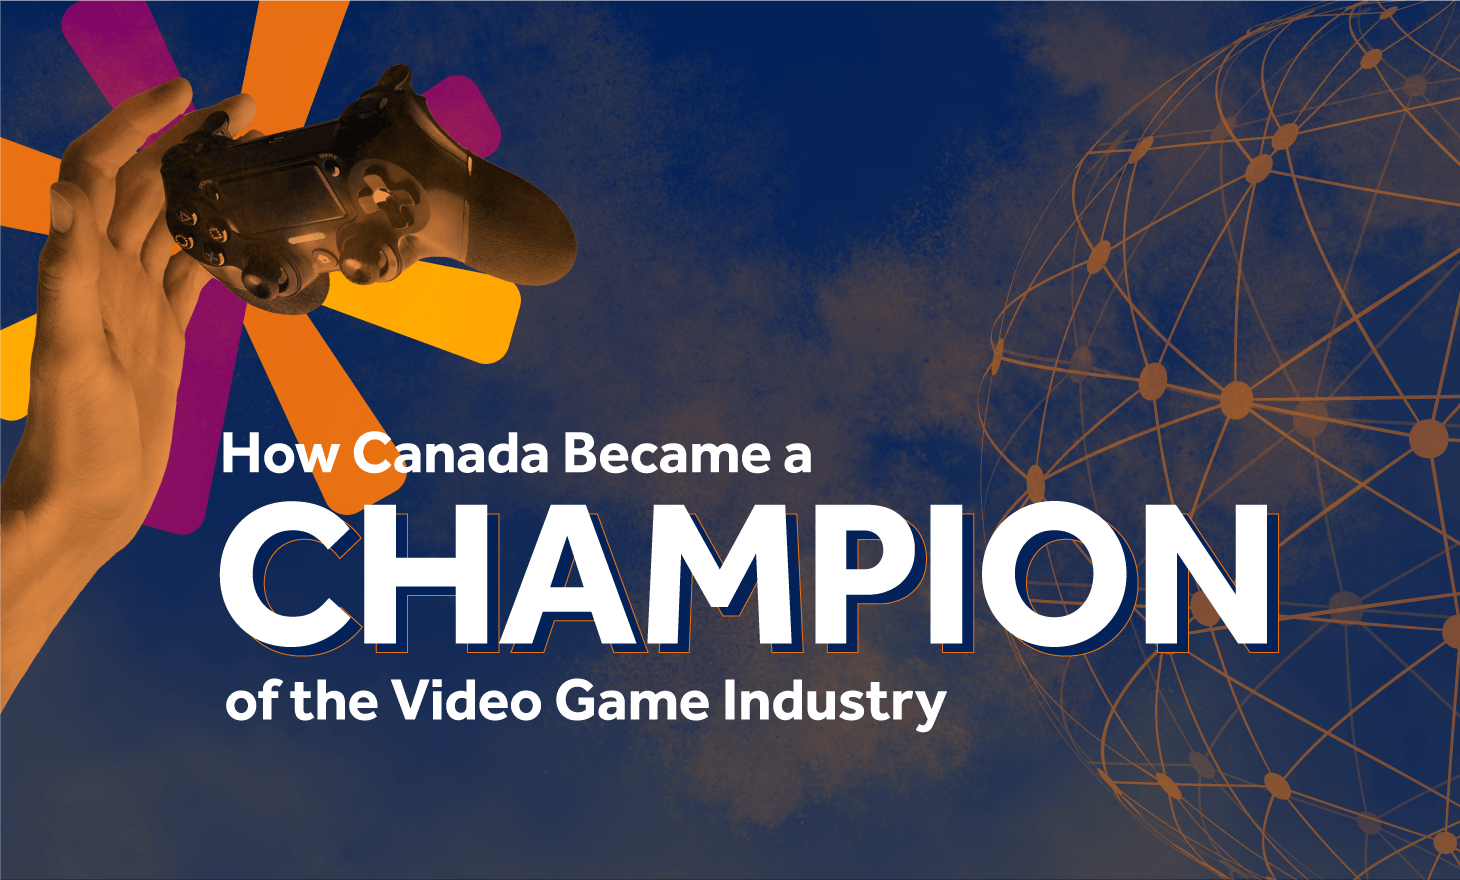 How Canada Became a Champion of the Video Game Industry